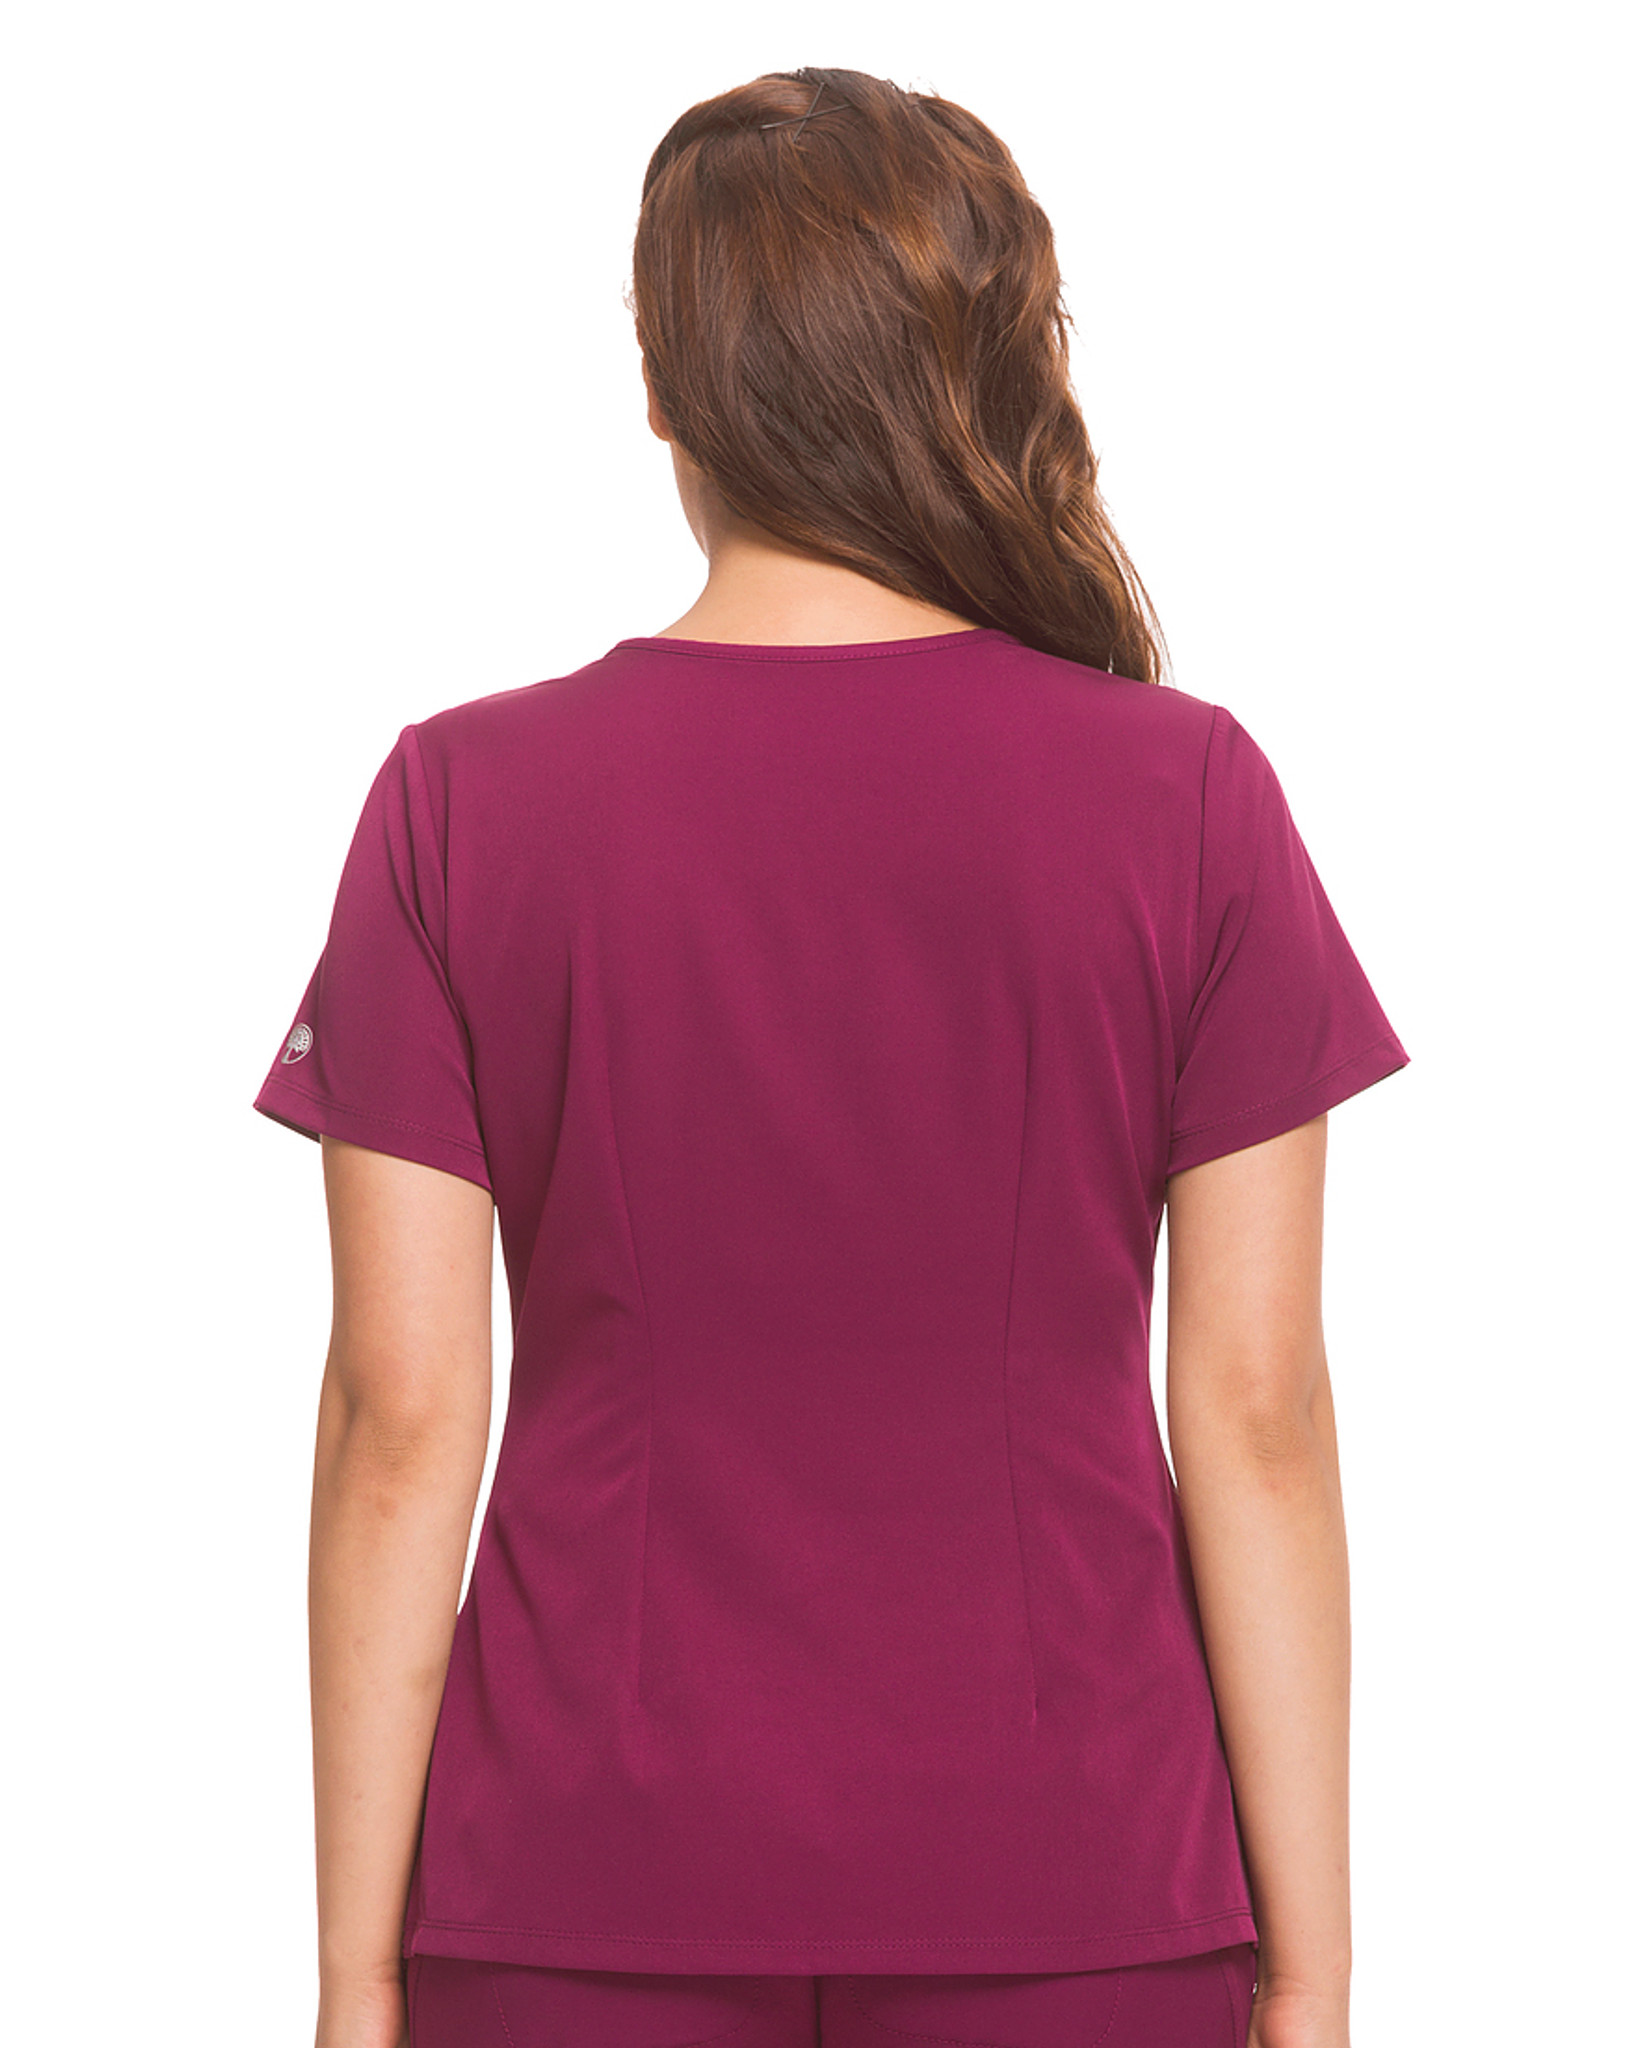 Healing Hands HH Works 2500 Monica Women's Scrub Top with v-neck, princess seams, and two pockets, spandex stretch and four way stretch. Model image back.